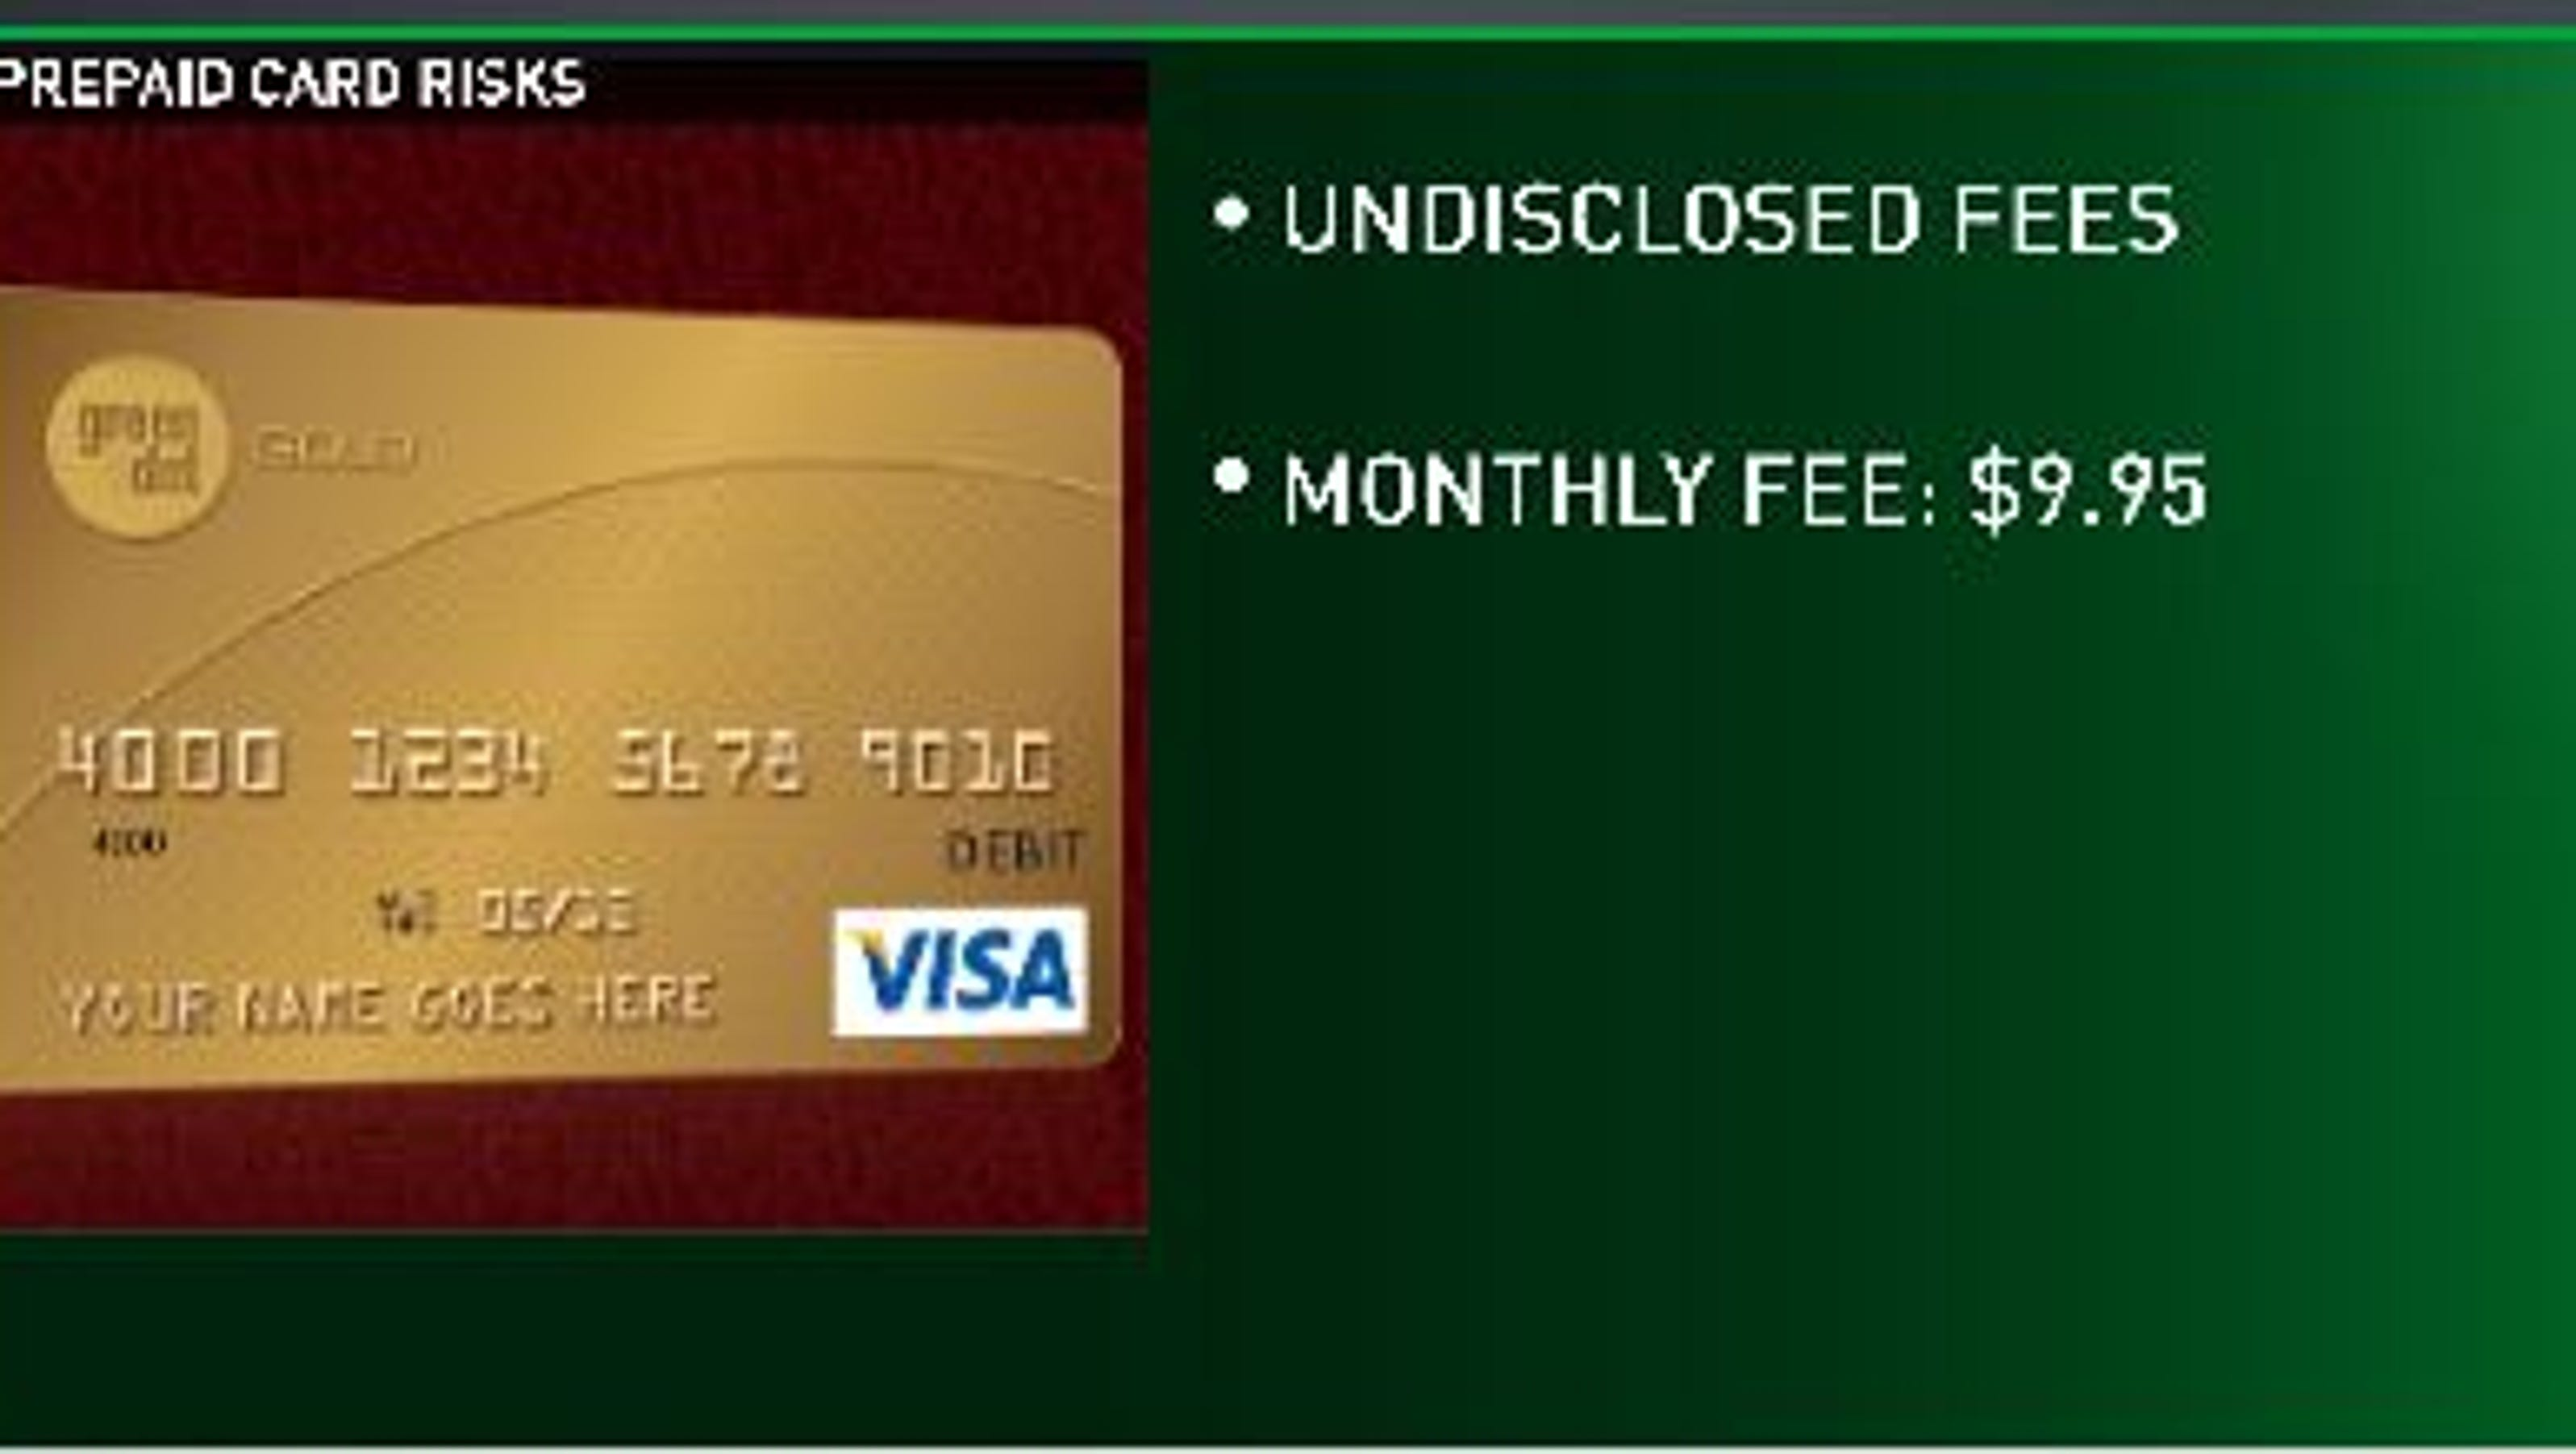 Best prepaid card for online shopping